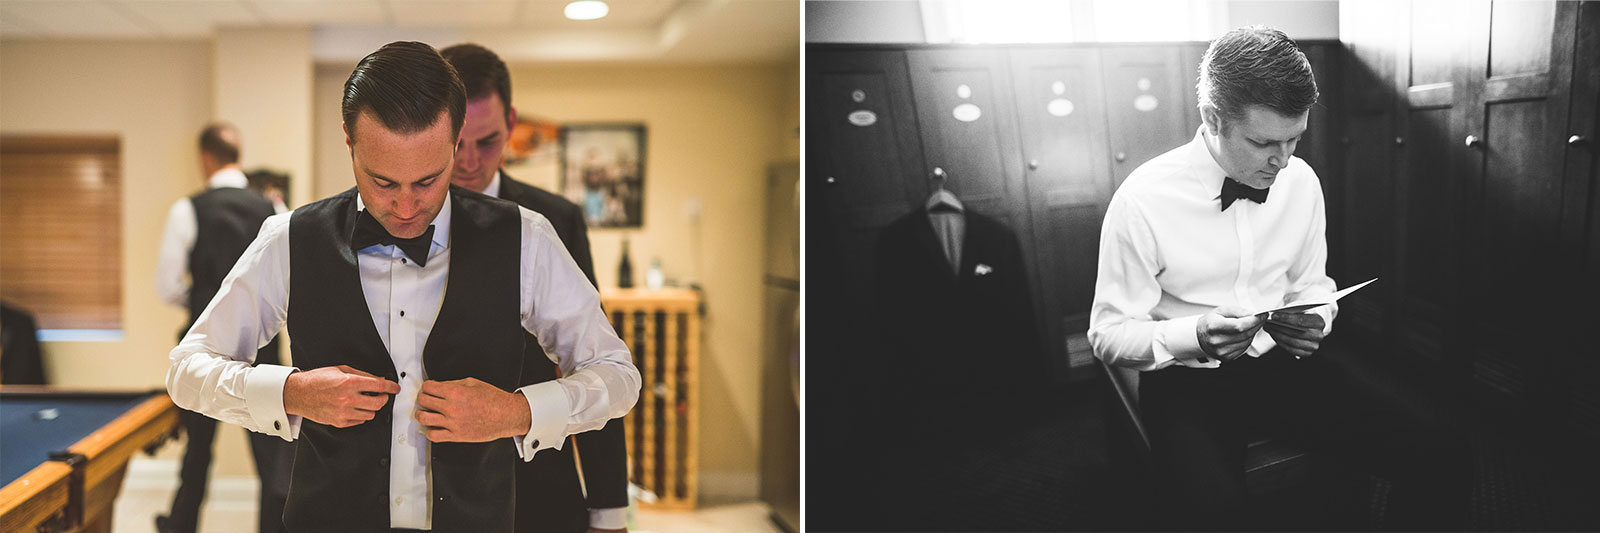 light is important in wedding photography - The Art of Light - Why it Matters To Your Wedding